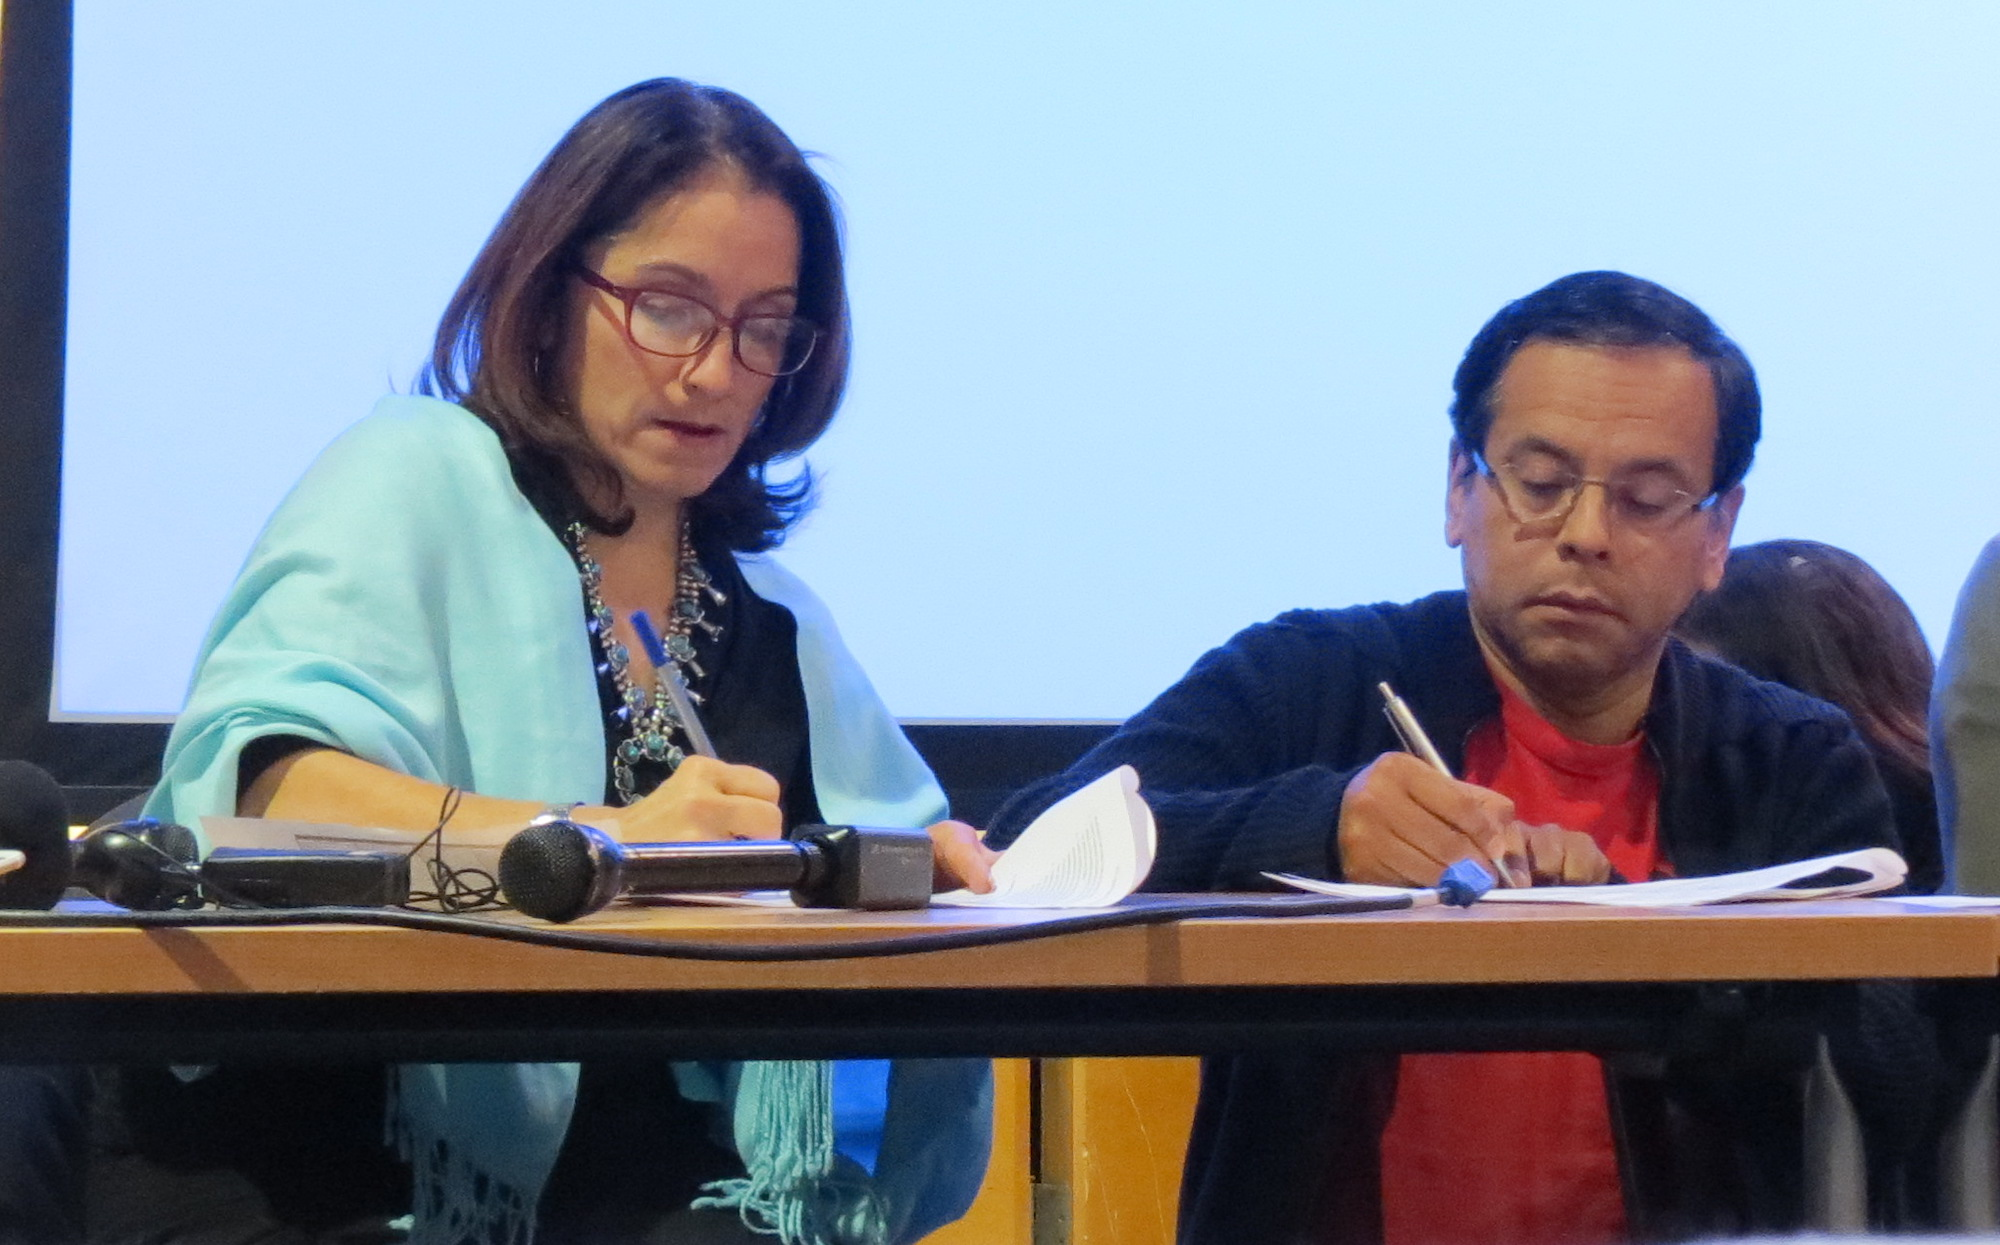 <p>DPS Superintendent Susana Cordova and DCTA President Henry Roman worked side by side during the all-nighter than ended the teacher strike.</p>